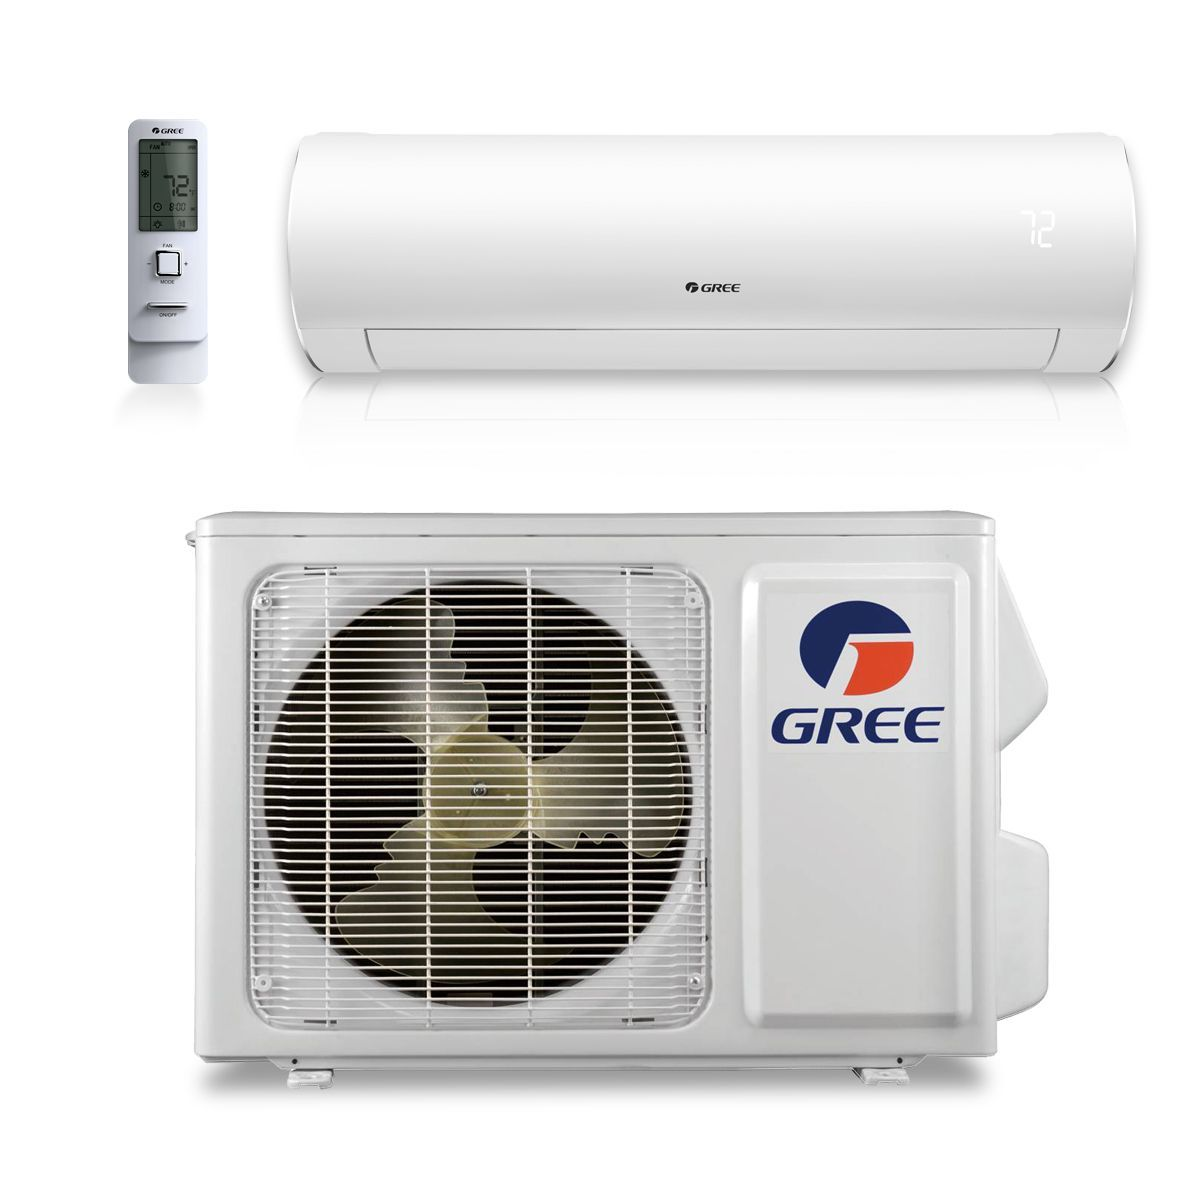 Gree 12 000 Btu 30 5 Seer Sapphire Wall Mount Ductless Mini Split Air Conditioner Heat Pump 208 230v Ductless Mini Split Heat Pump Ductless